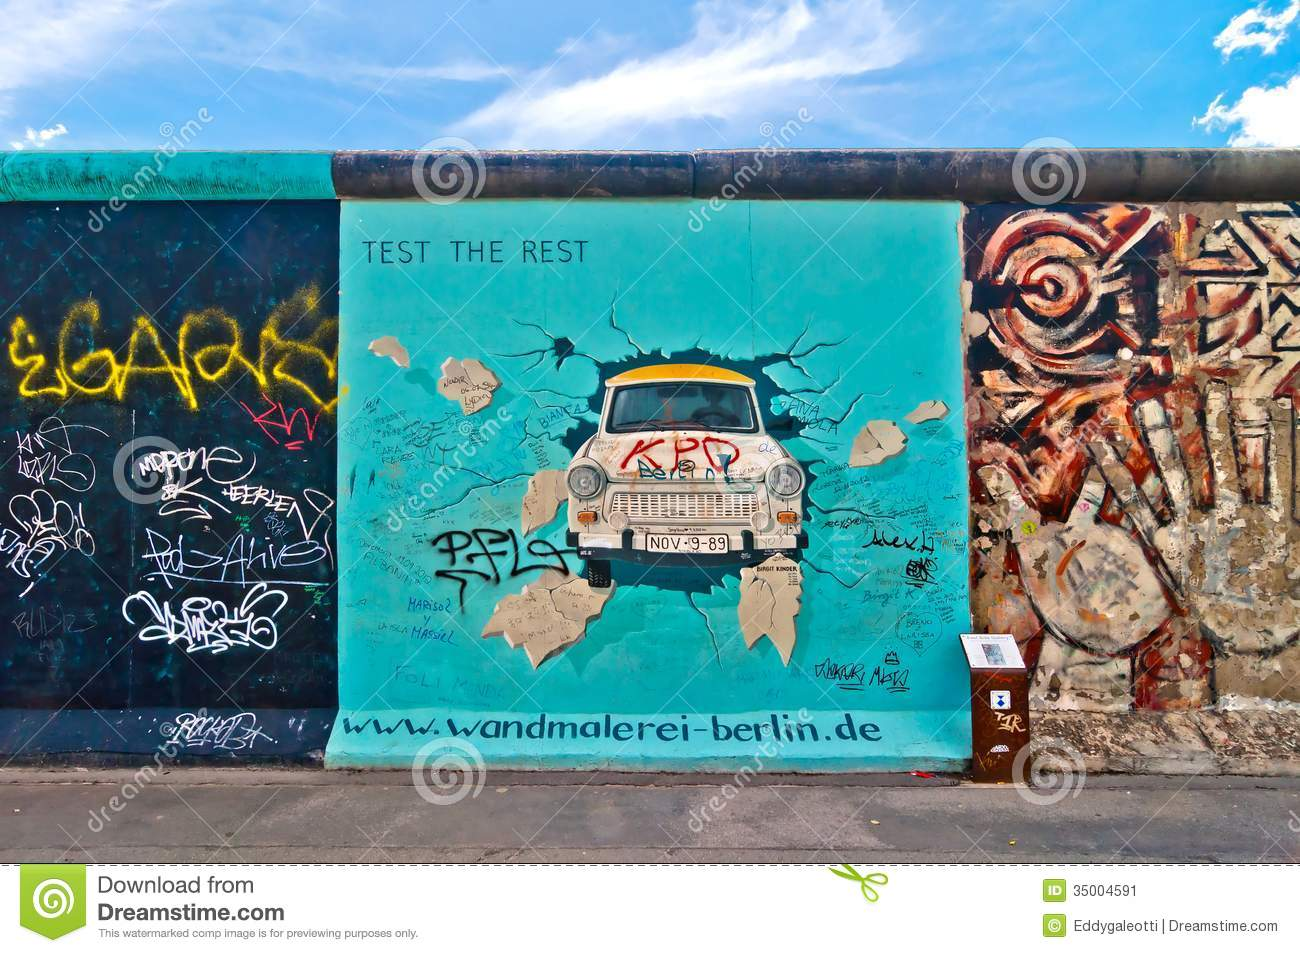 Outdoor Kinder Trabant Painting From Birgit Kinder On Berlin Wall In The East